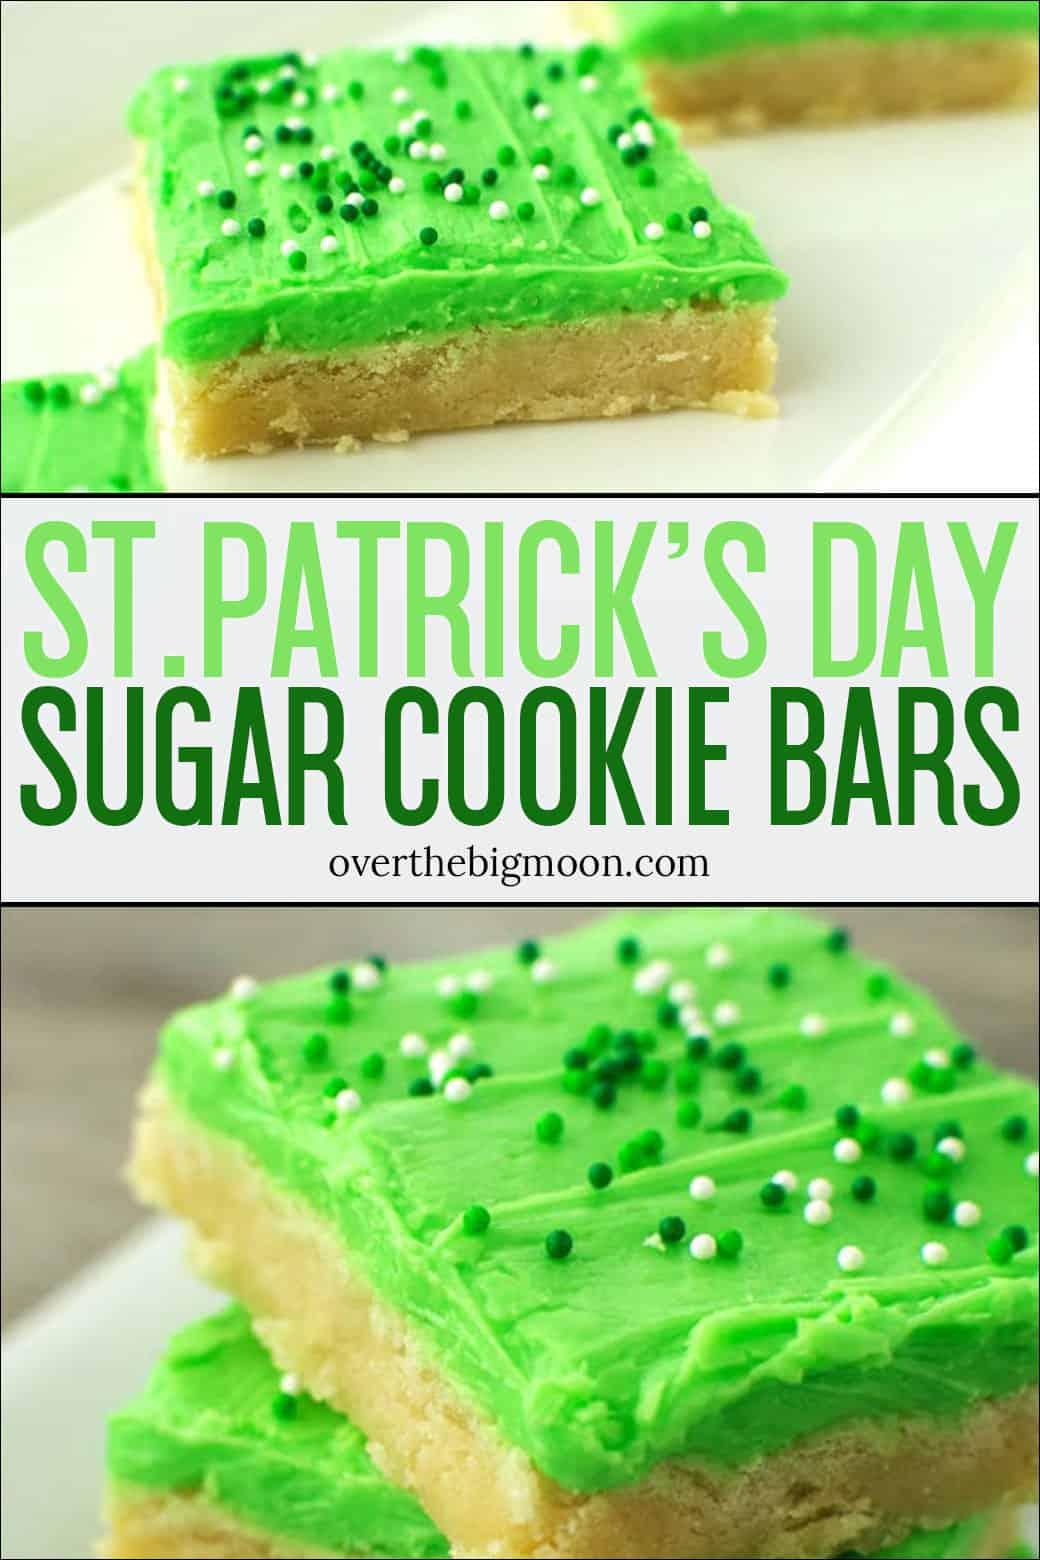 These St.Patrick's Day Sugar Cookie Bars are the perfect treat to help celebrate St.Patrick's Day! The sugar cookie bar is so delicious and has the best texture!